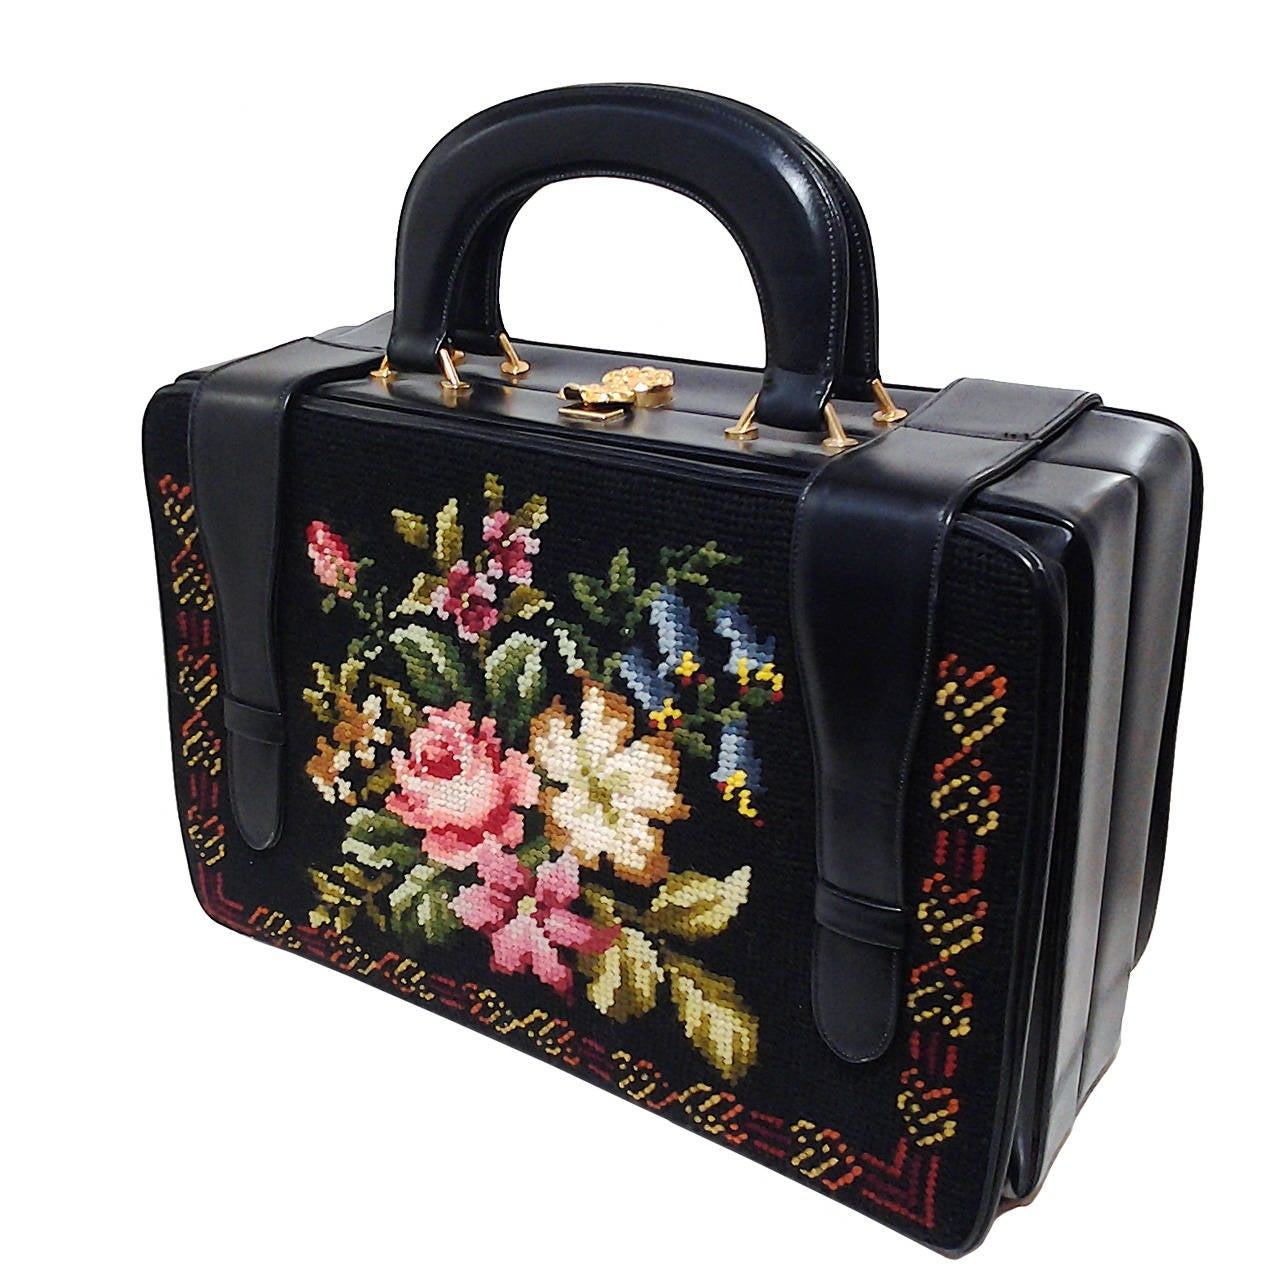 1950s Harry Rosenfeld Floral Needlepoint Structured Handbag 1